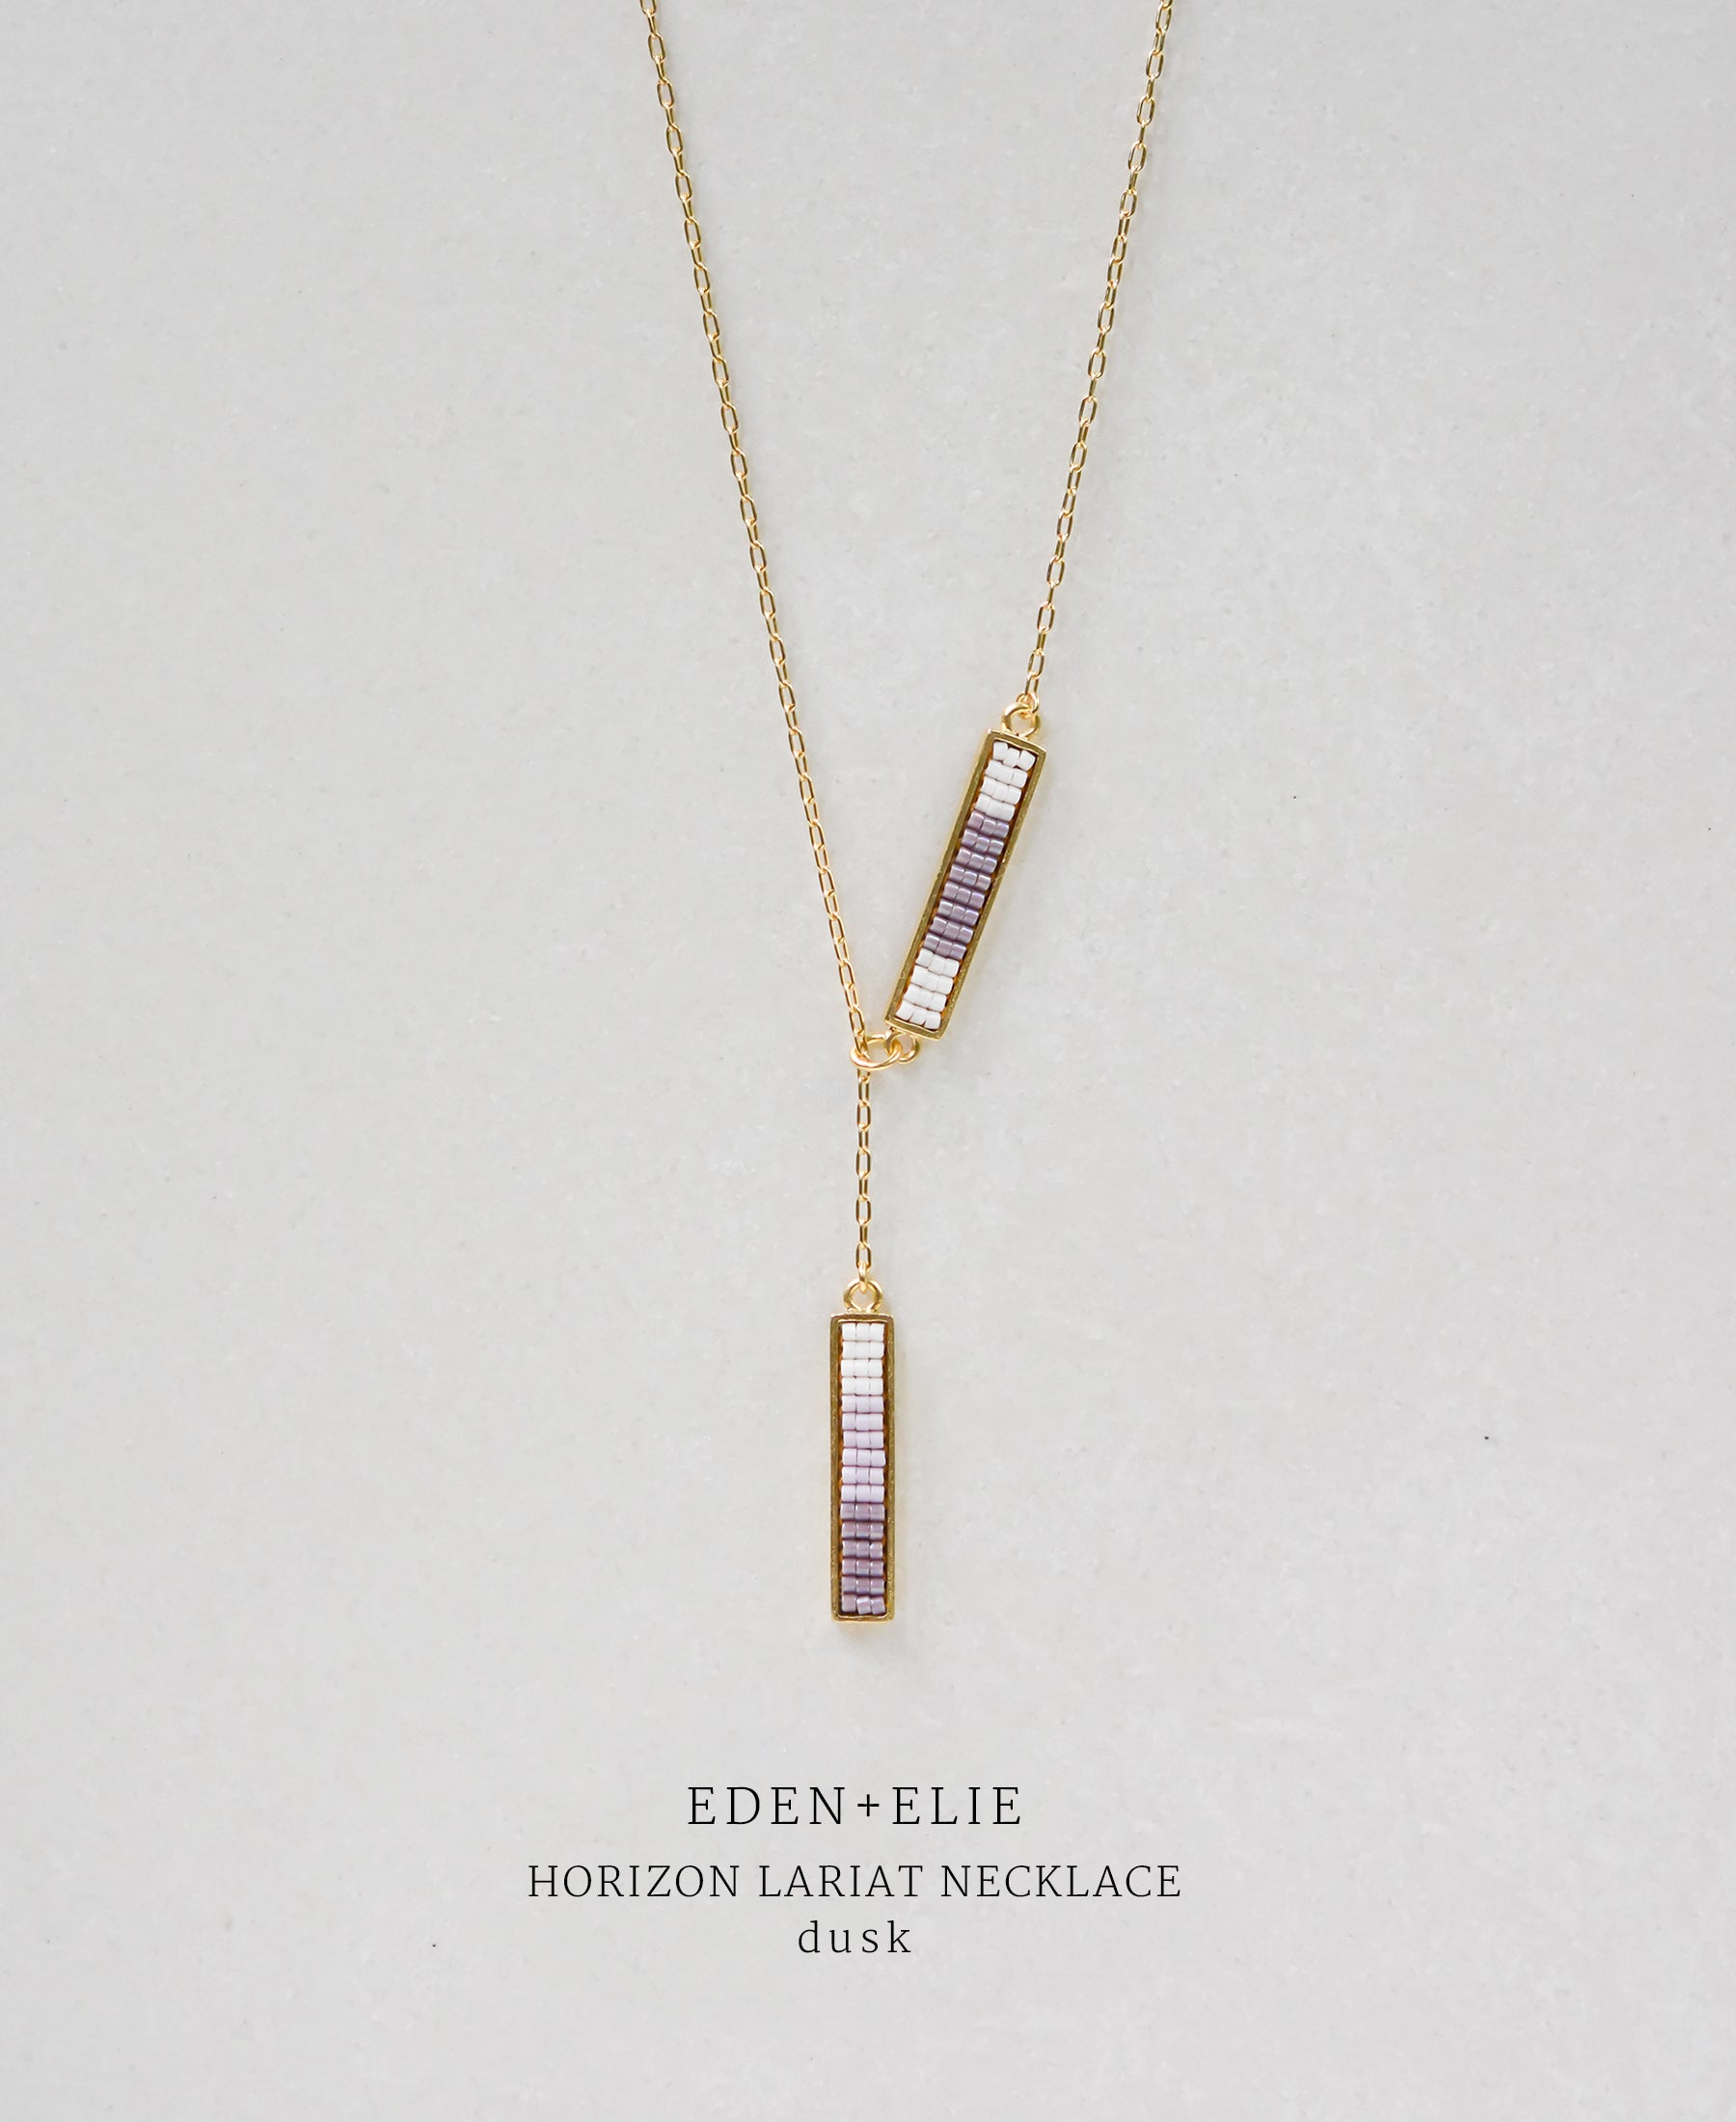 EDEN + ELIE Horizon Lariat necklace - dusk purple